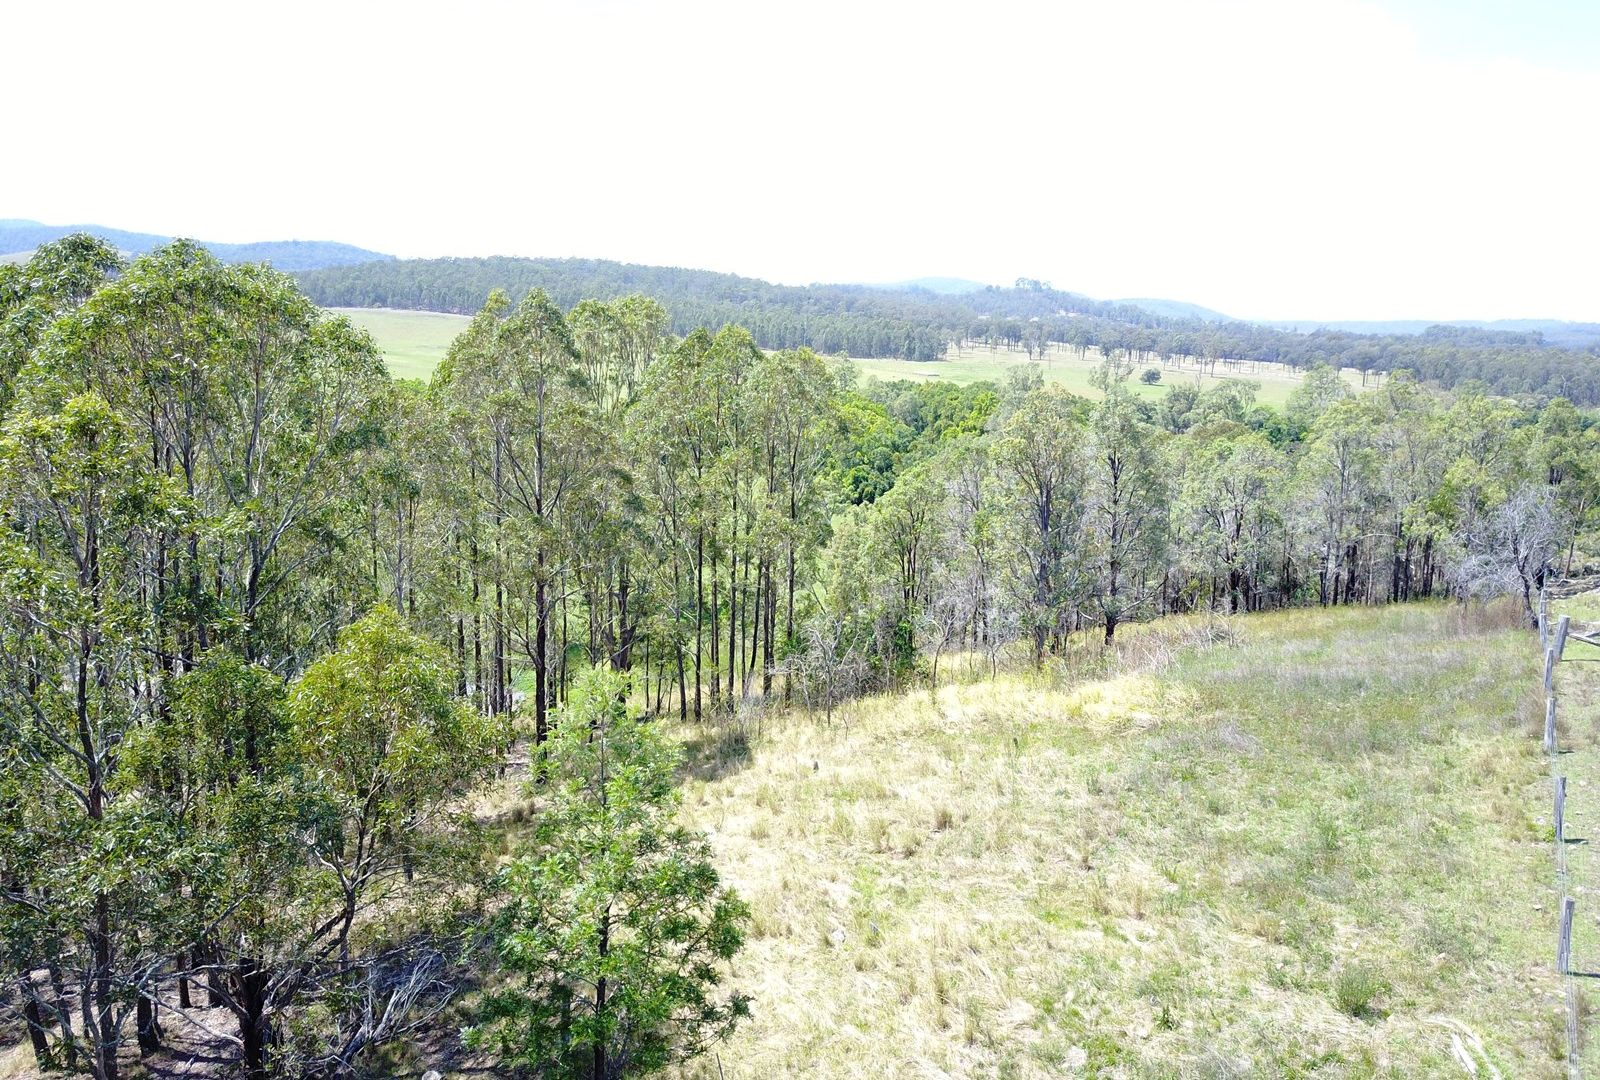 717 Flat Tops Road, Cambra Via, Dungog NSW 2420, Image 1